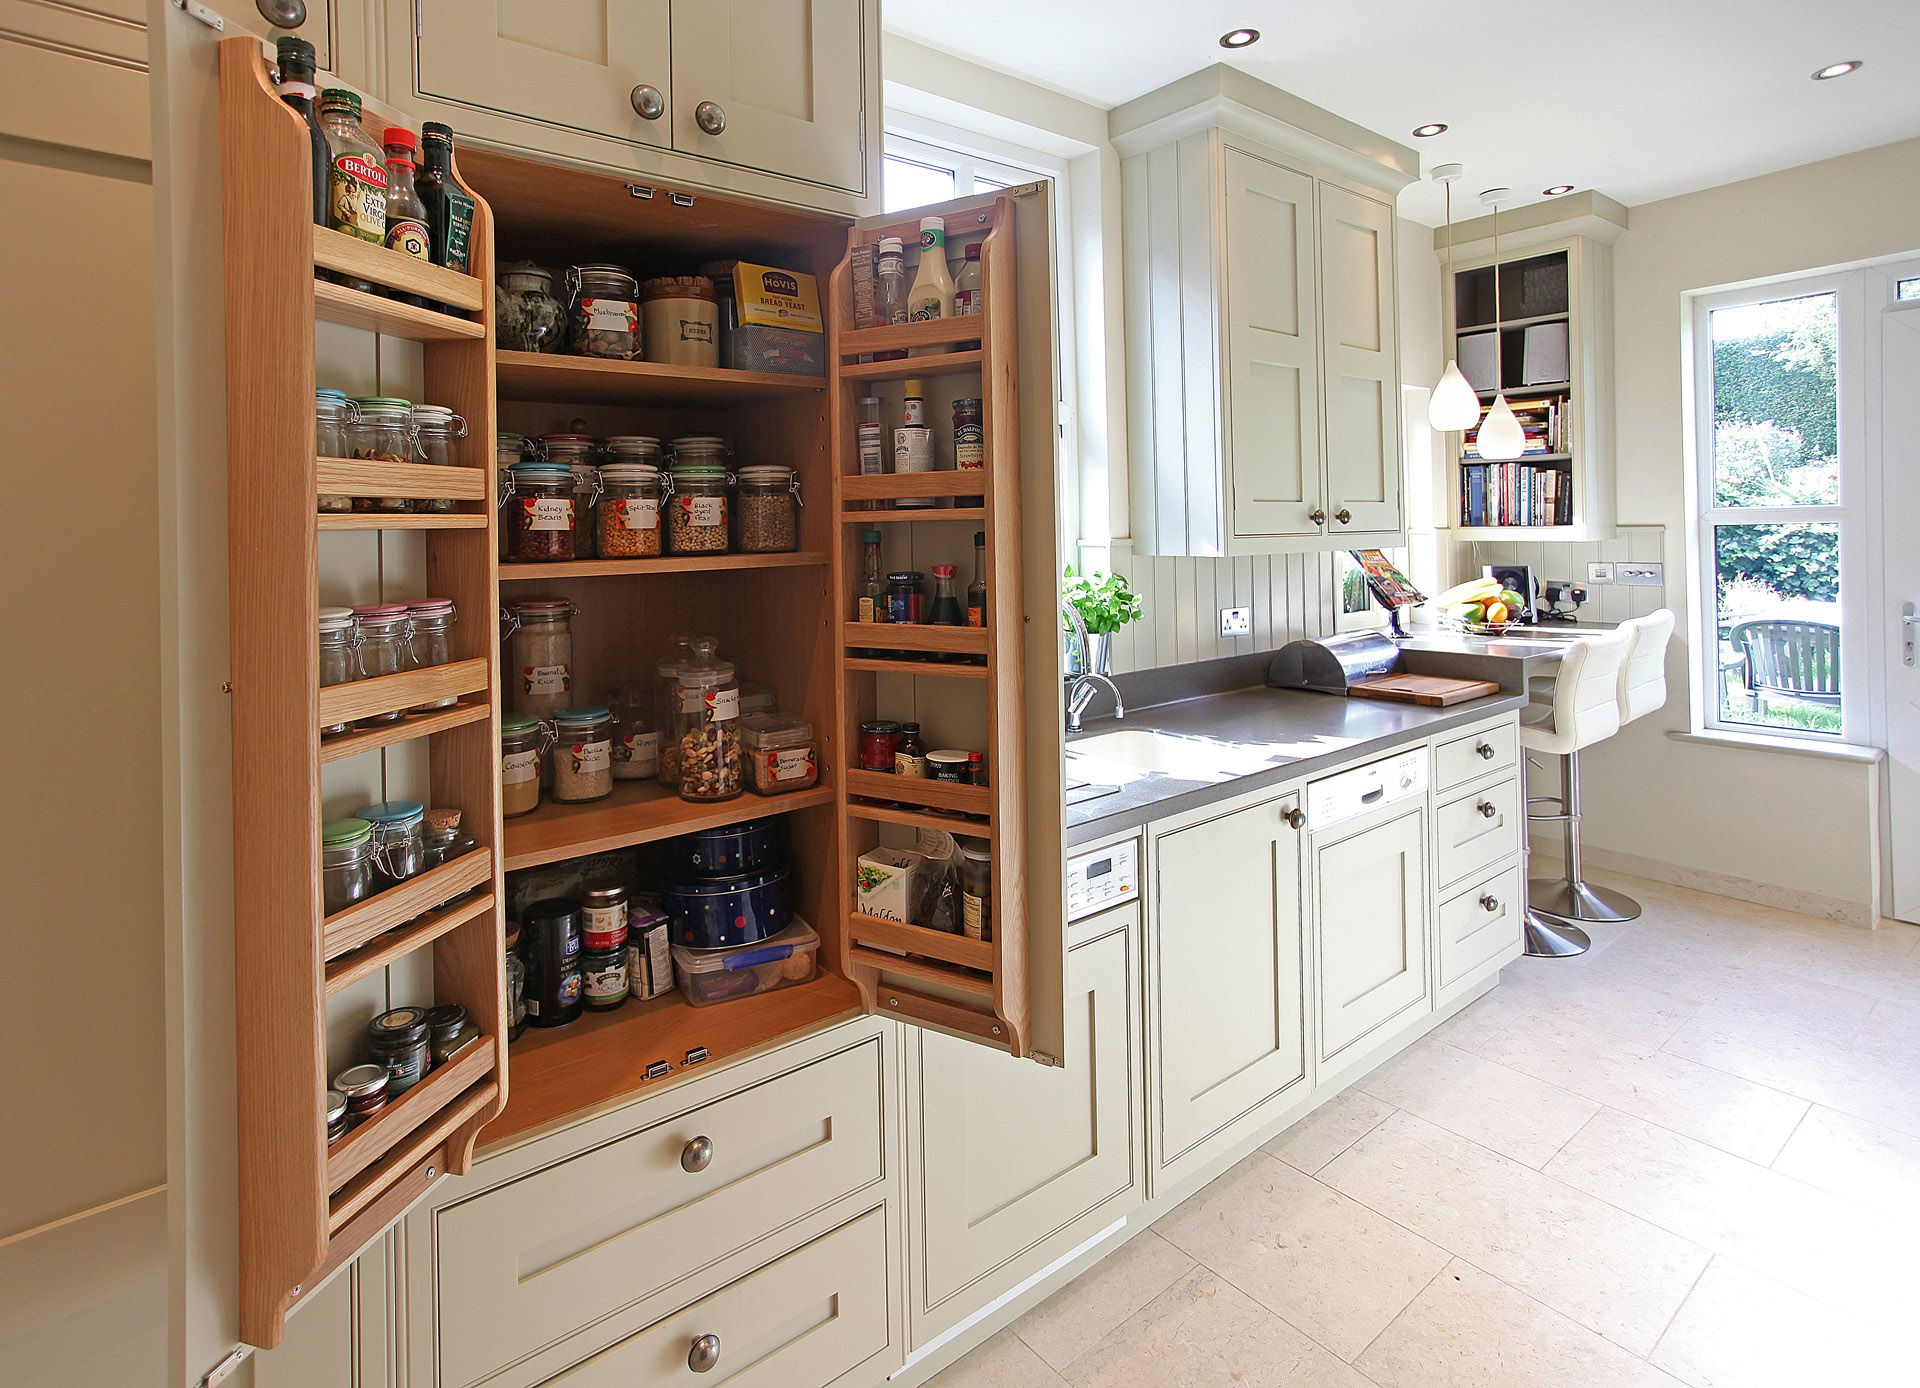 Bat Wing Pantry Cabinet In Galley Kitchen Bespoke Small Kitchens Google Search